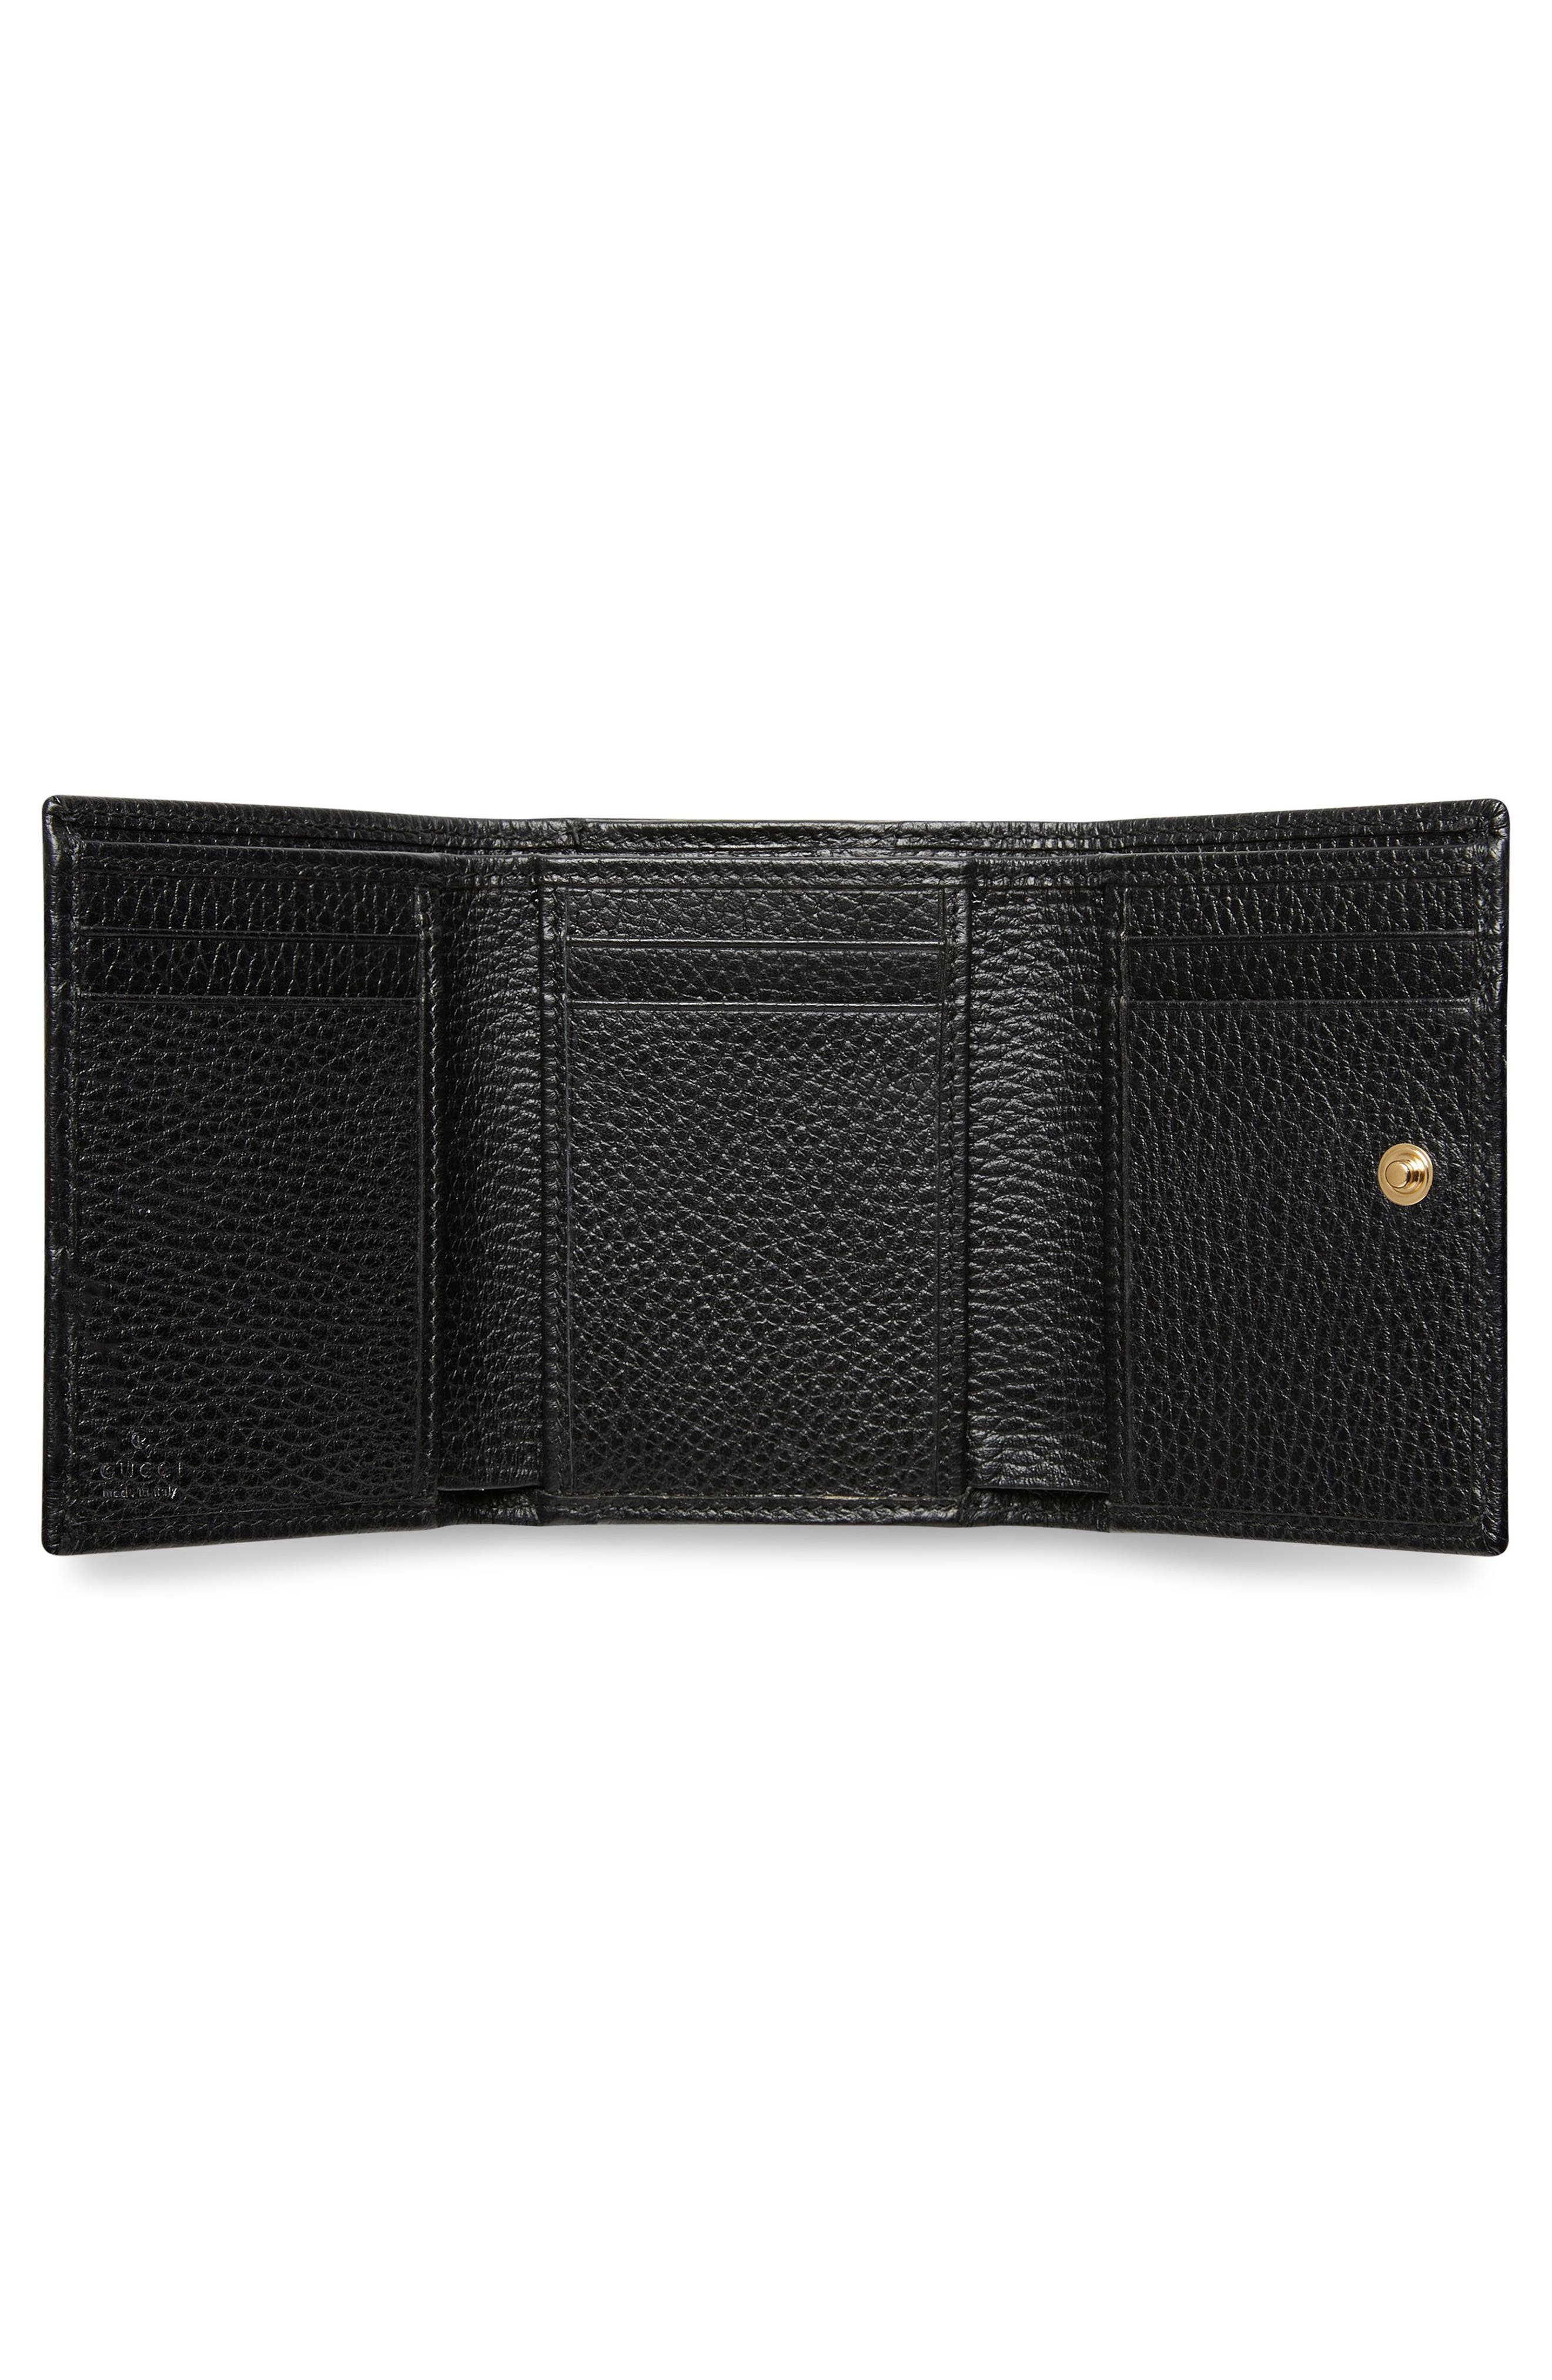 Petite Marmont Leather French Wallet,                             Alternate thumbnail 5, color,                             NERO